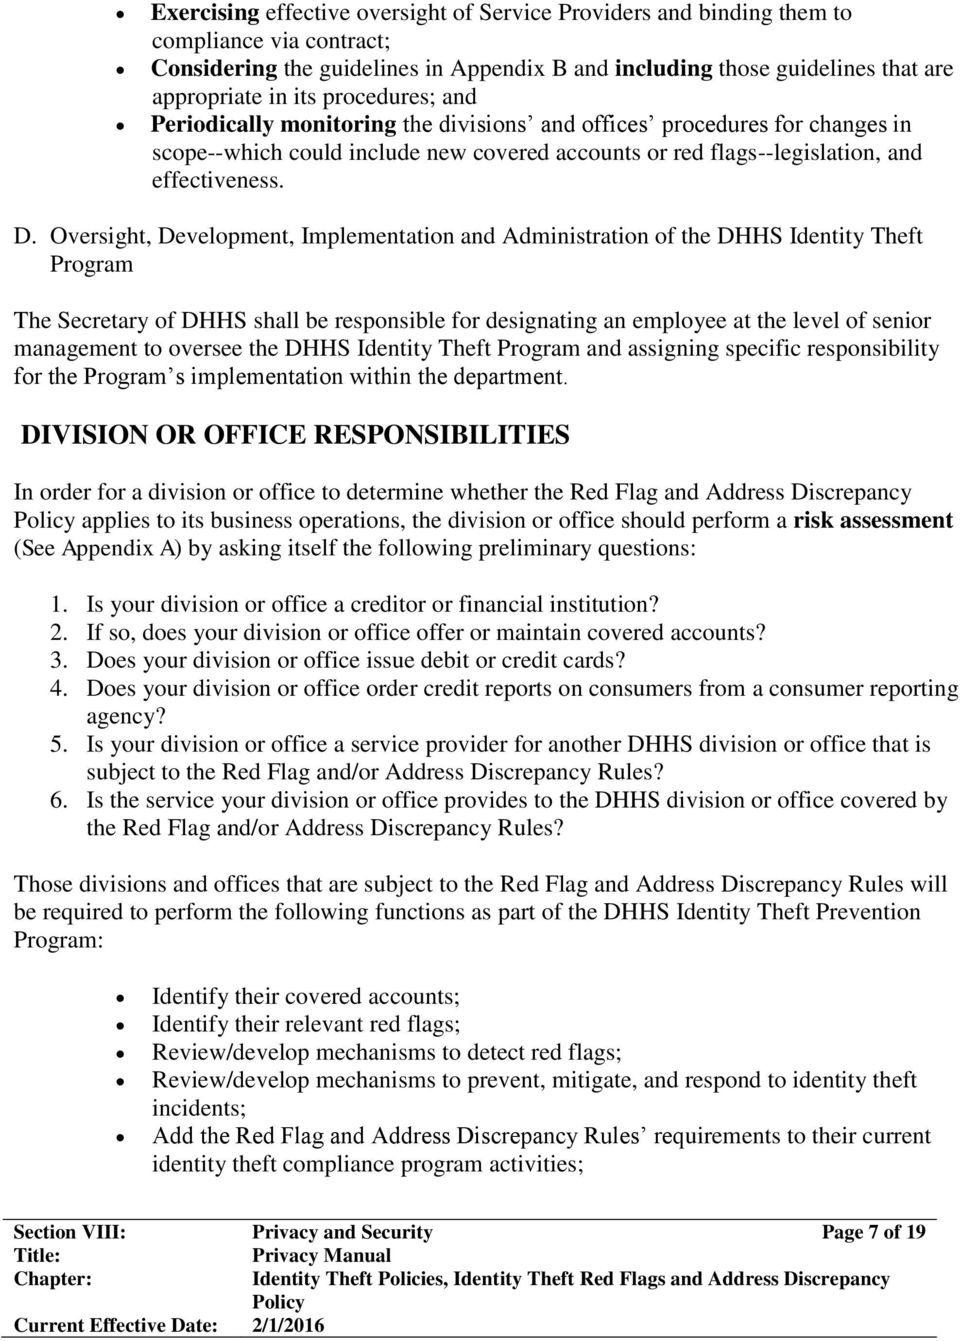 Oversight, Development, Implementation and Administration of the DHHS Identity Theft Program The Secretary of DHHS shall be responsible for designating an employee at the level of senior management